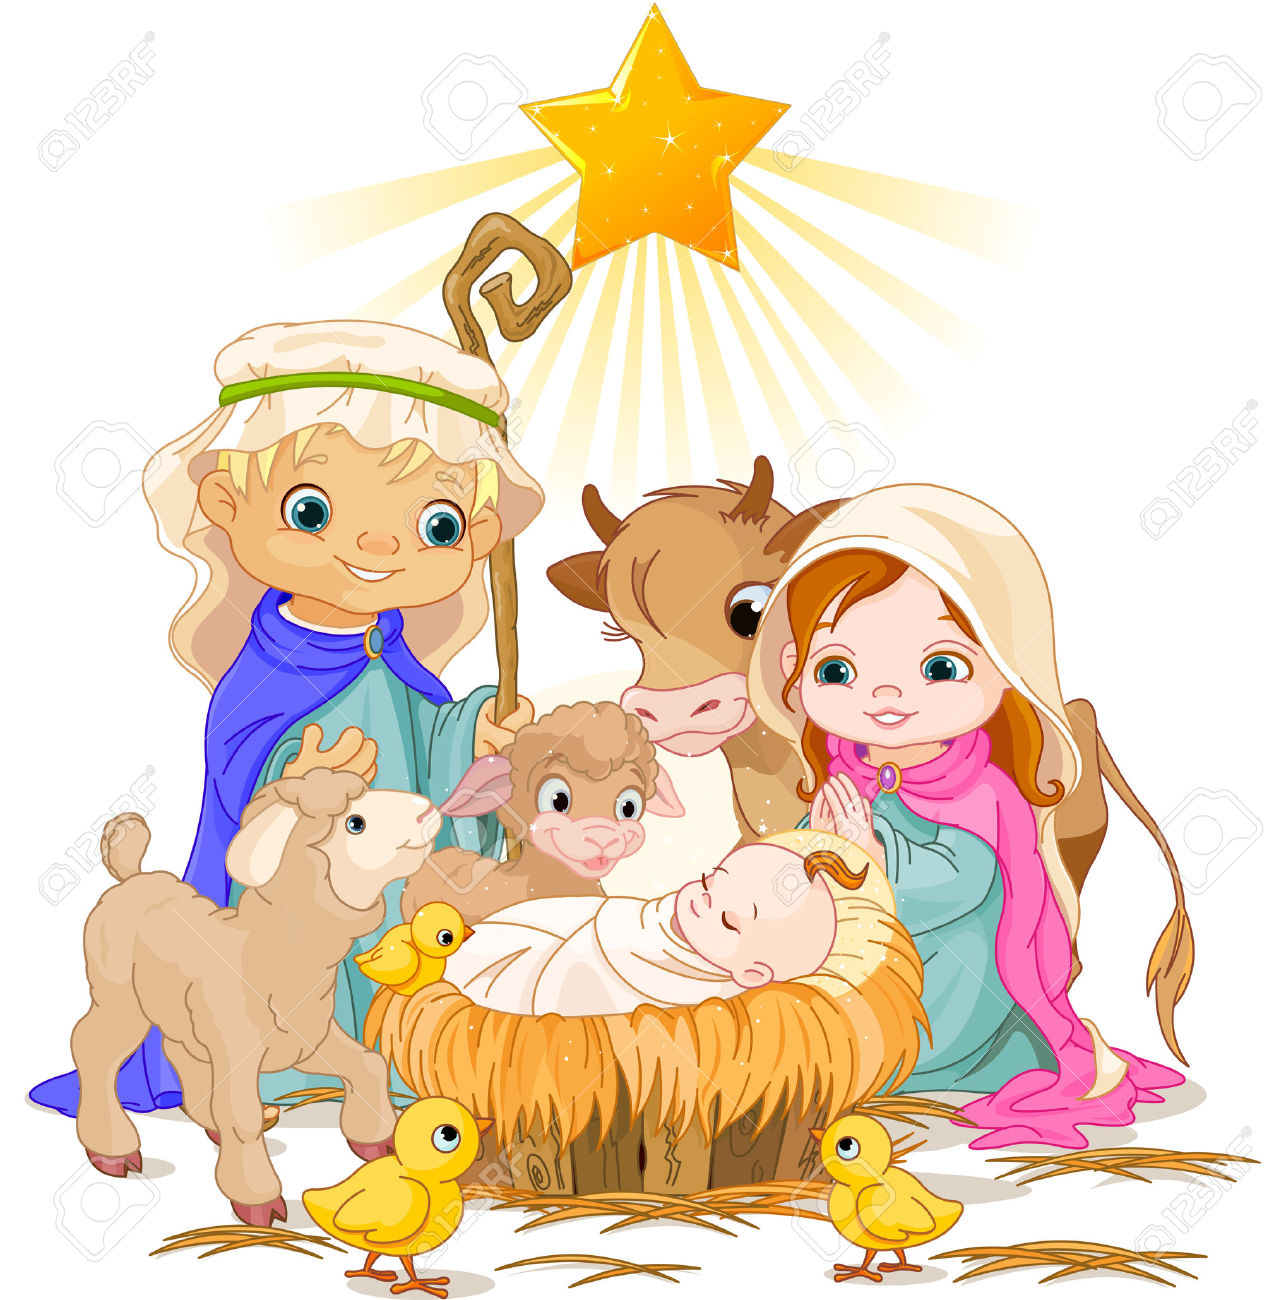 christmas nativity clipart at getdrawings com free for personal rh getdrawings com nativity clip art for kids nativity clip art free